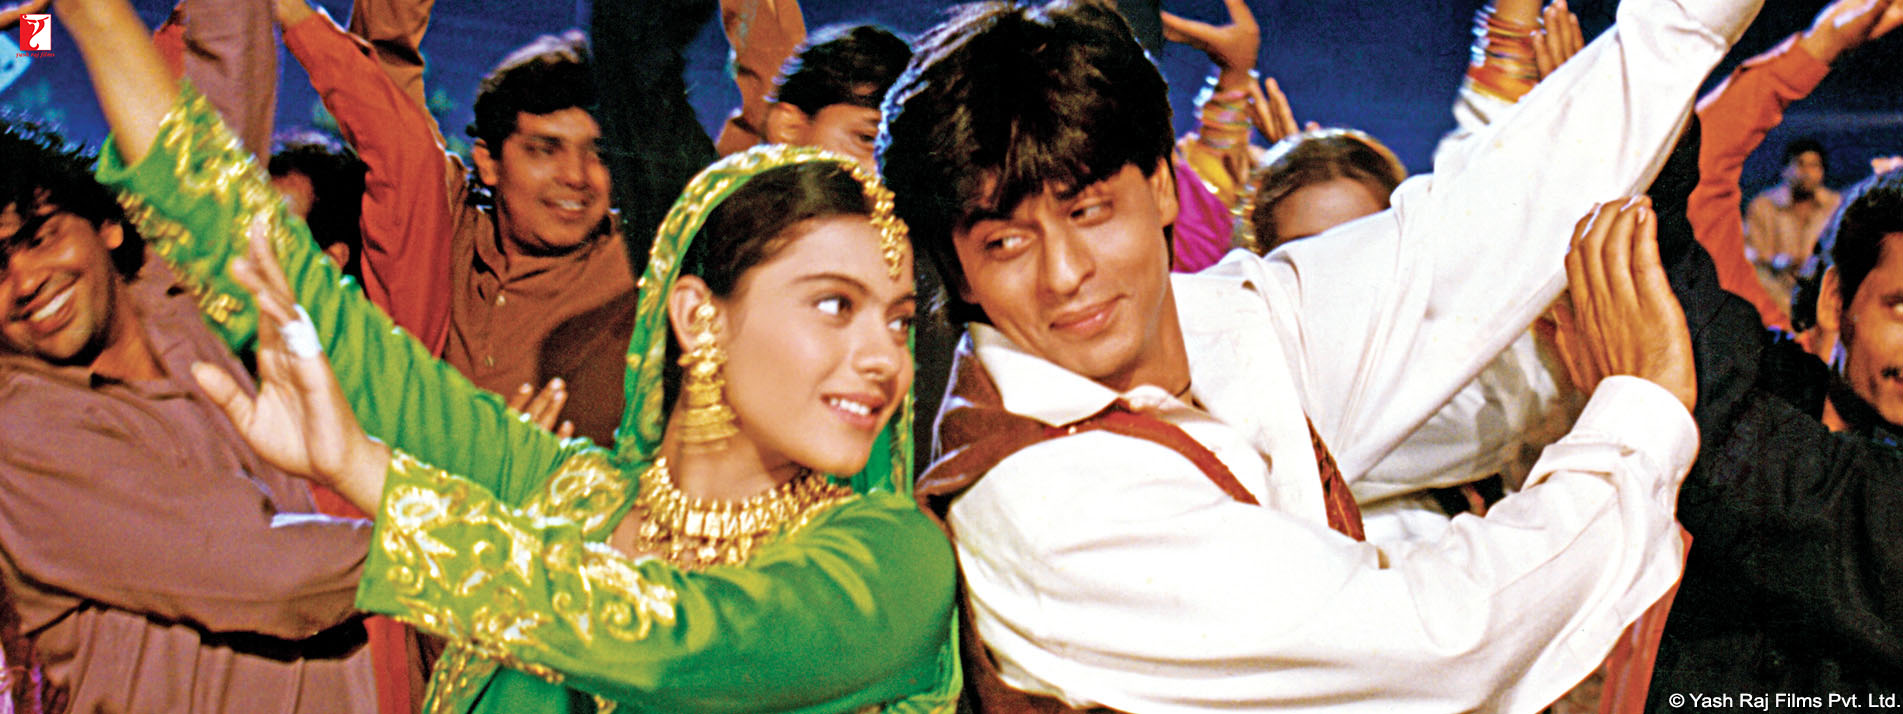 Dilwale Dulhania Le Jayenge Movie Video Songs Movie Trailer Cast